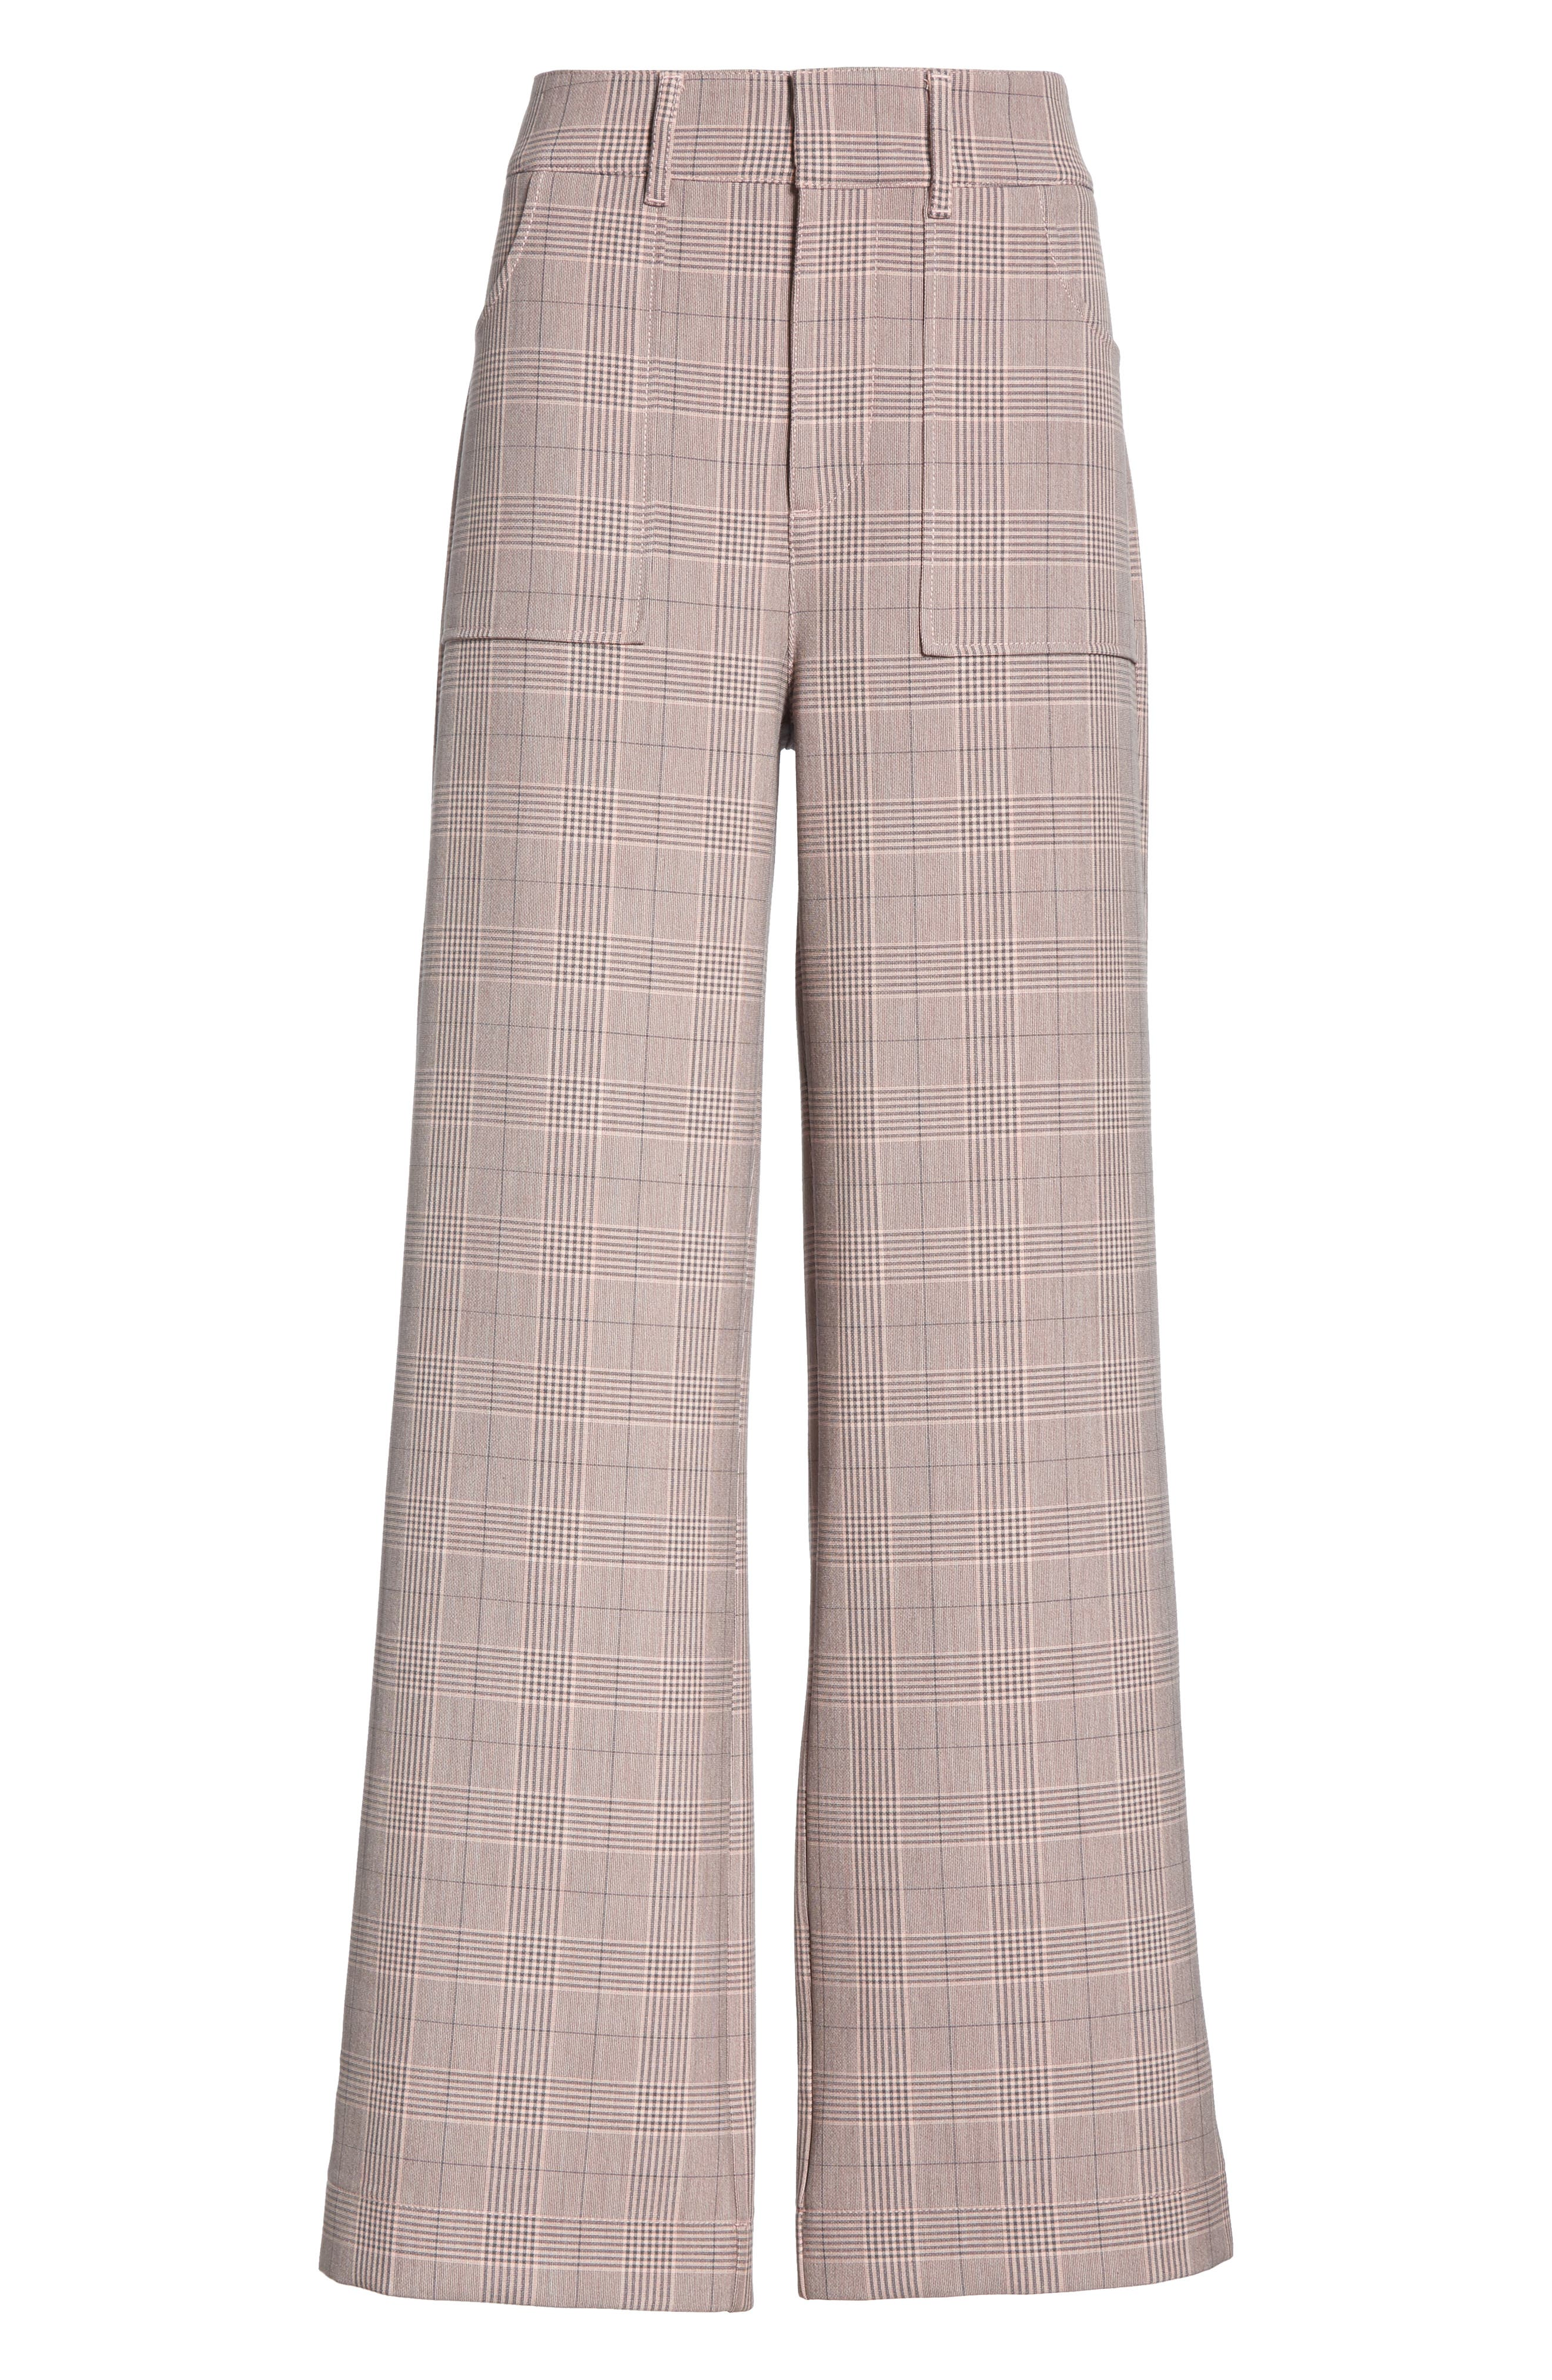 GANNI,                             Suiting Pants,                             Alternate thumbnail 6, color,                             SILVER PINK 499